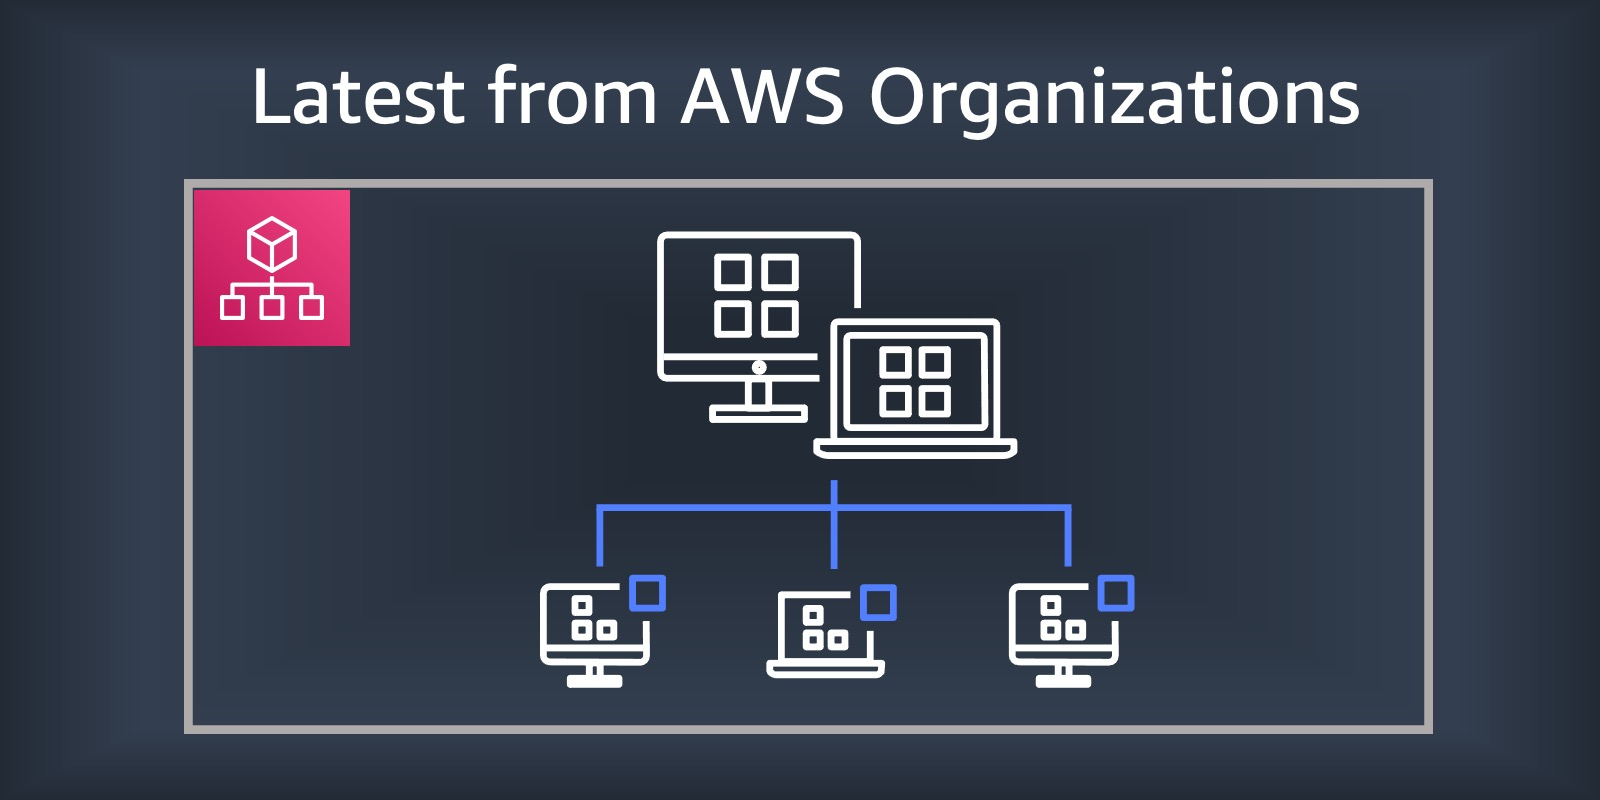 Latest from AWS Organizations